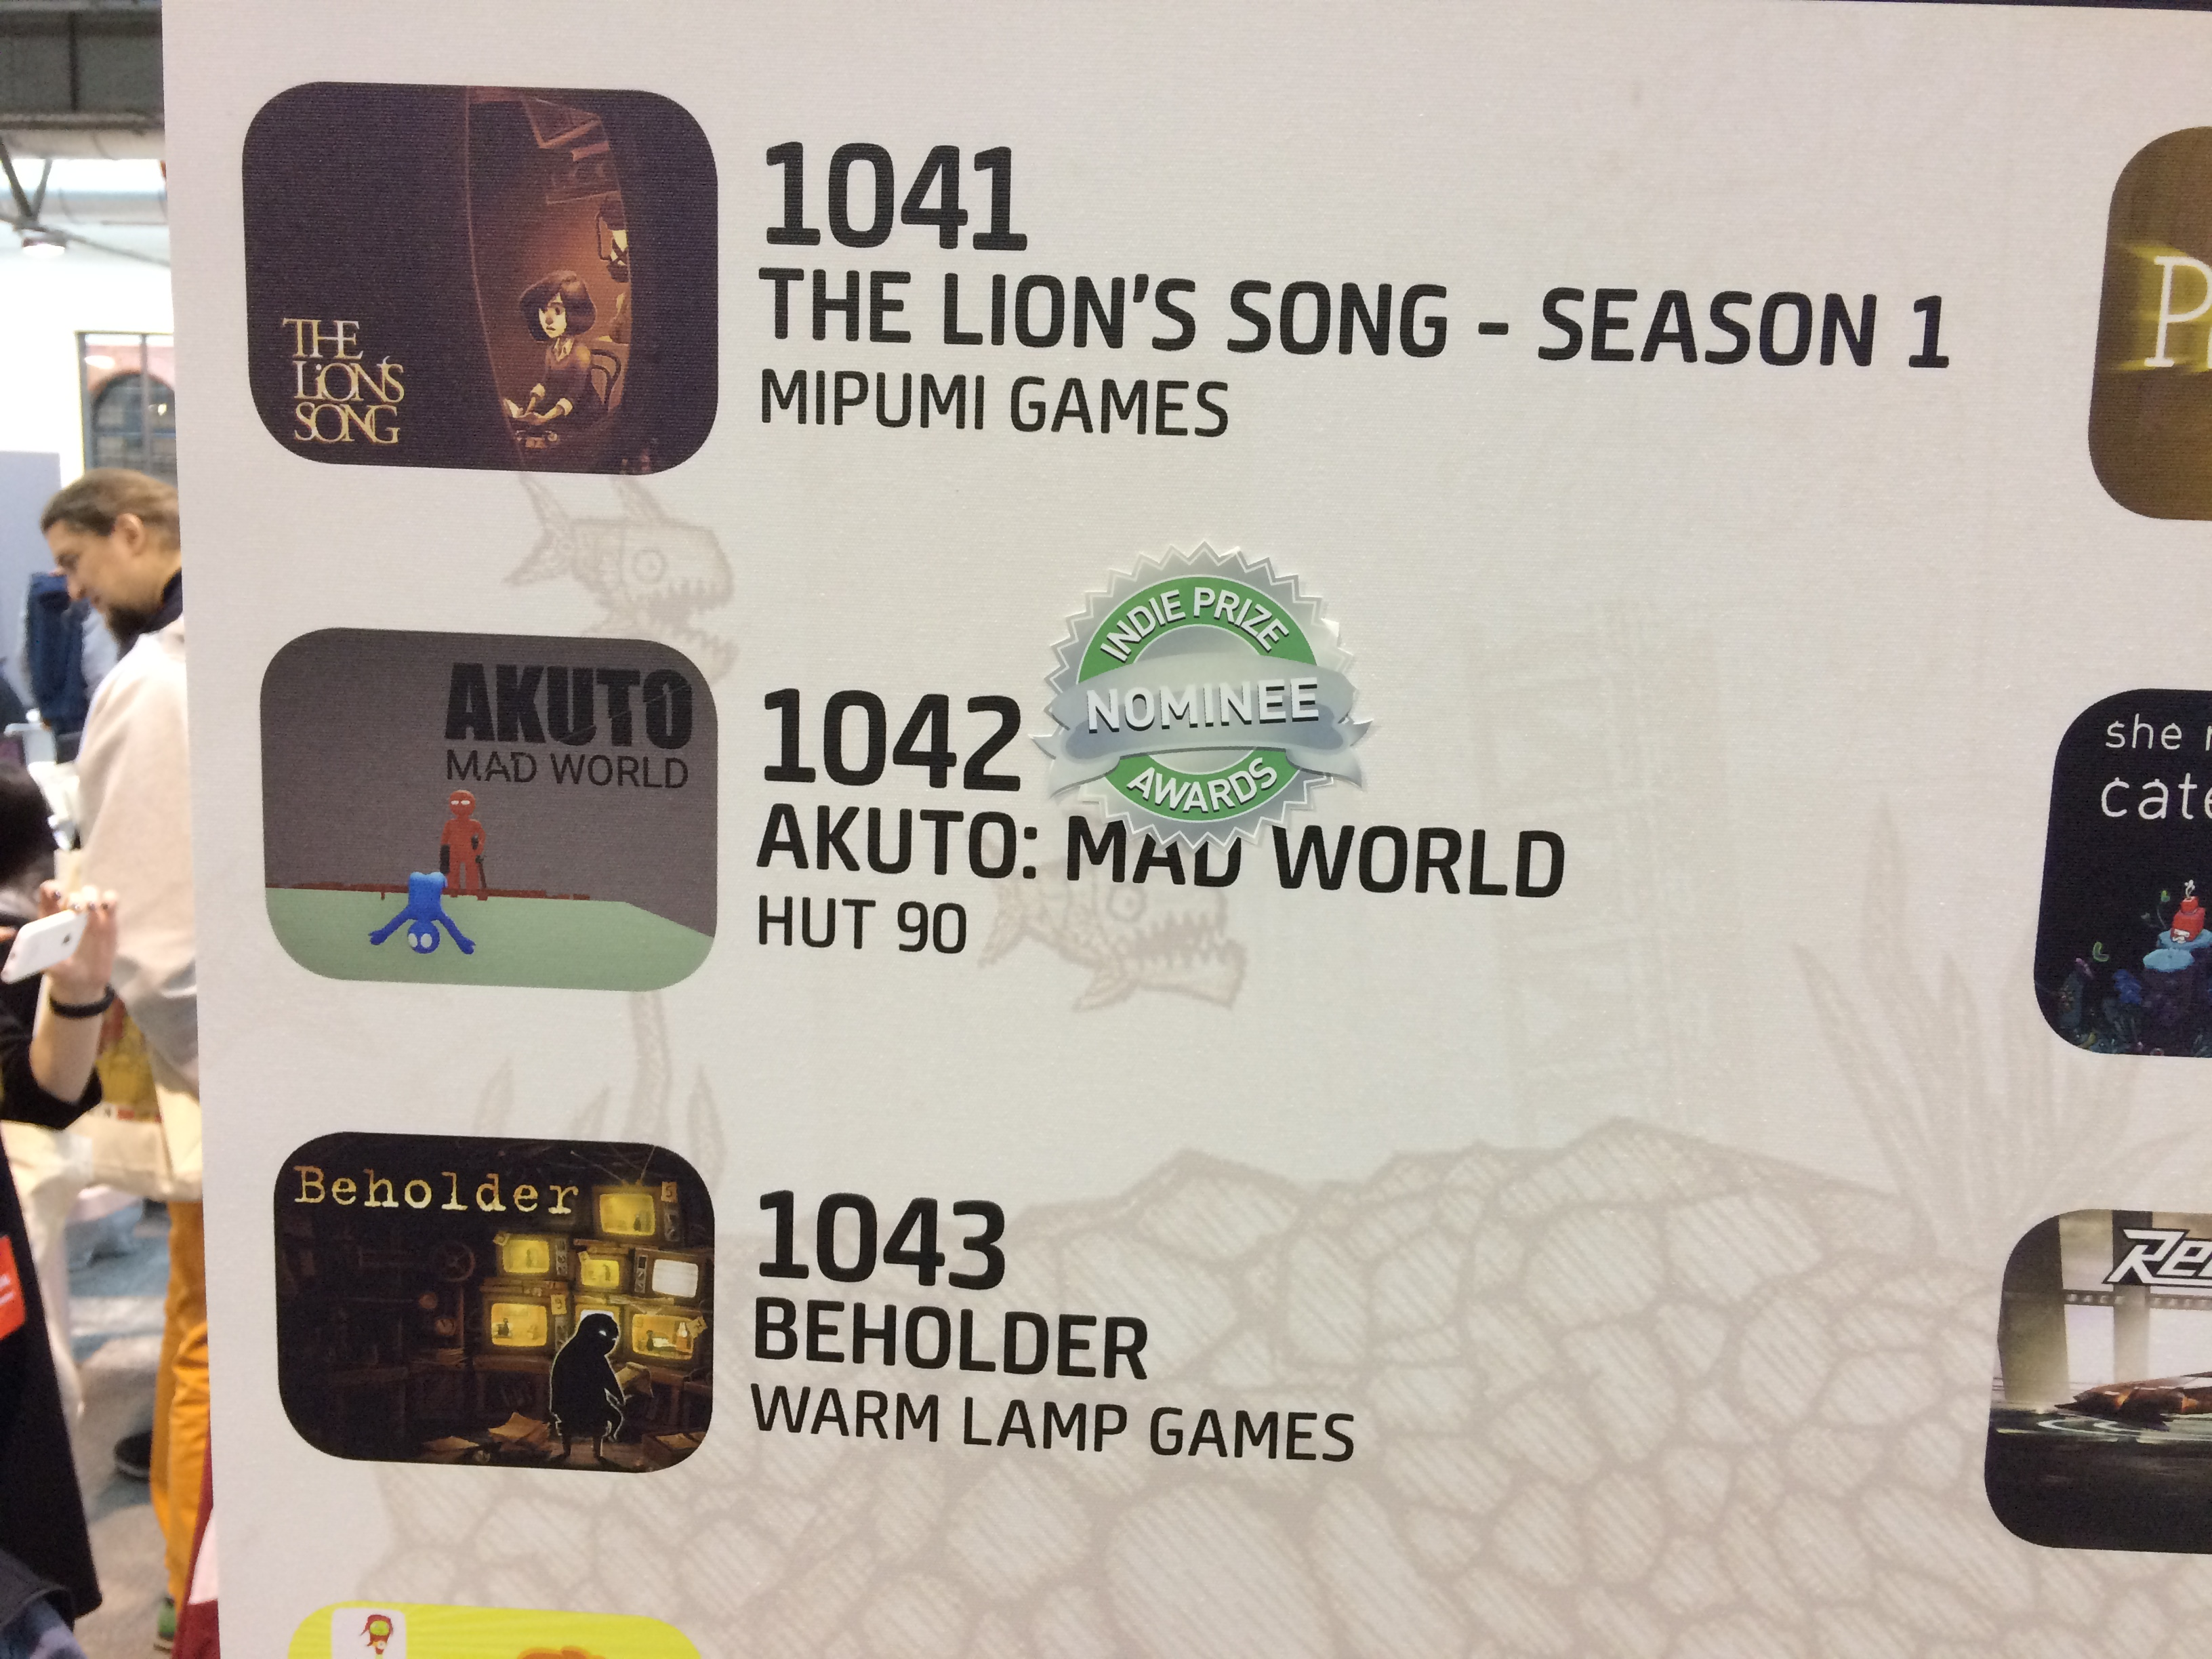 Akuto: Mad World Casual Connect Best Multiplayer Game Nomination